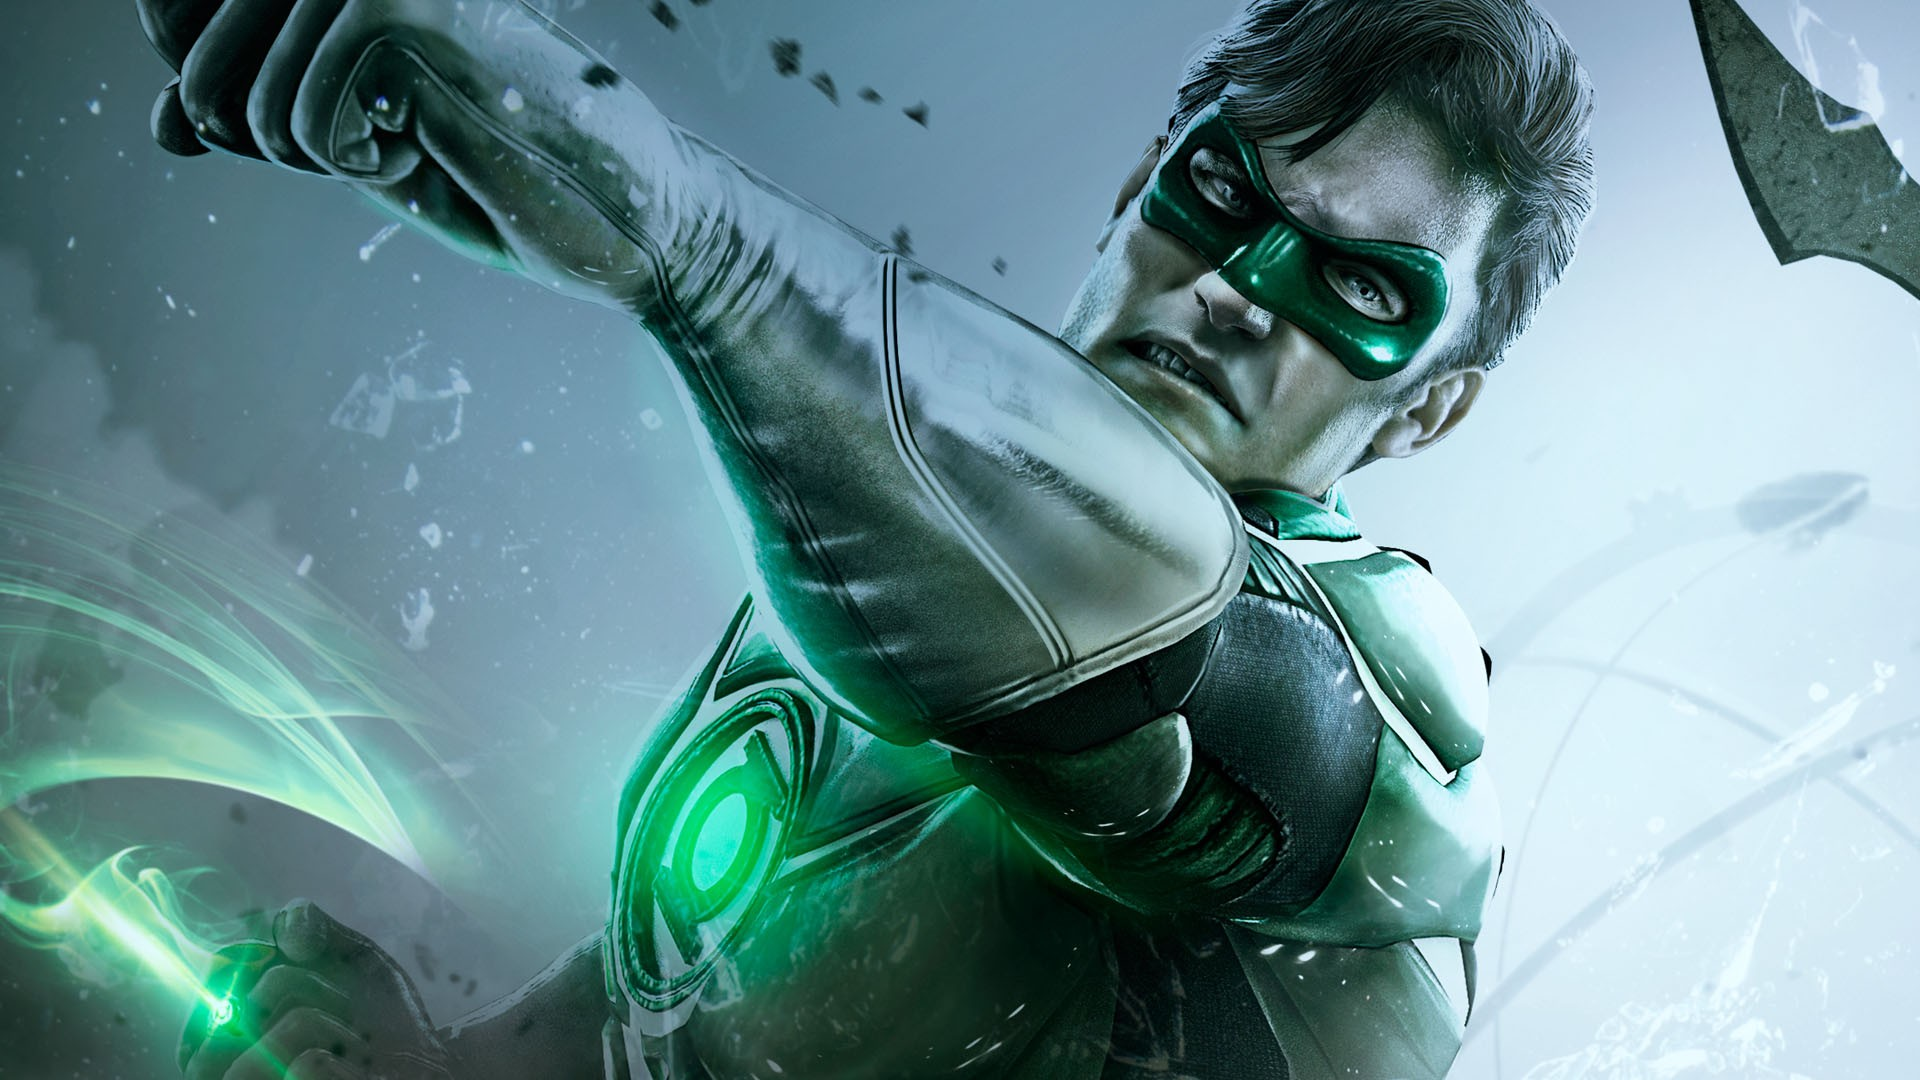 Green Lantern 2, HD Movies, 4k Wallpapers, Images